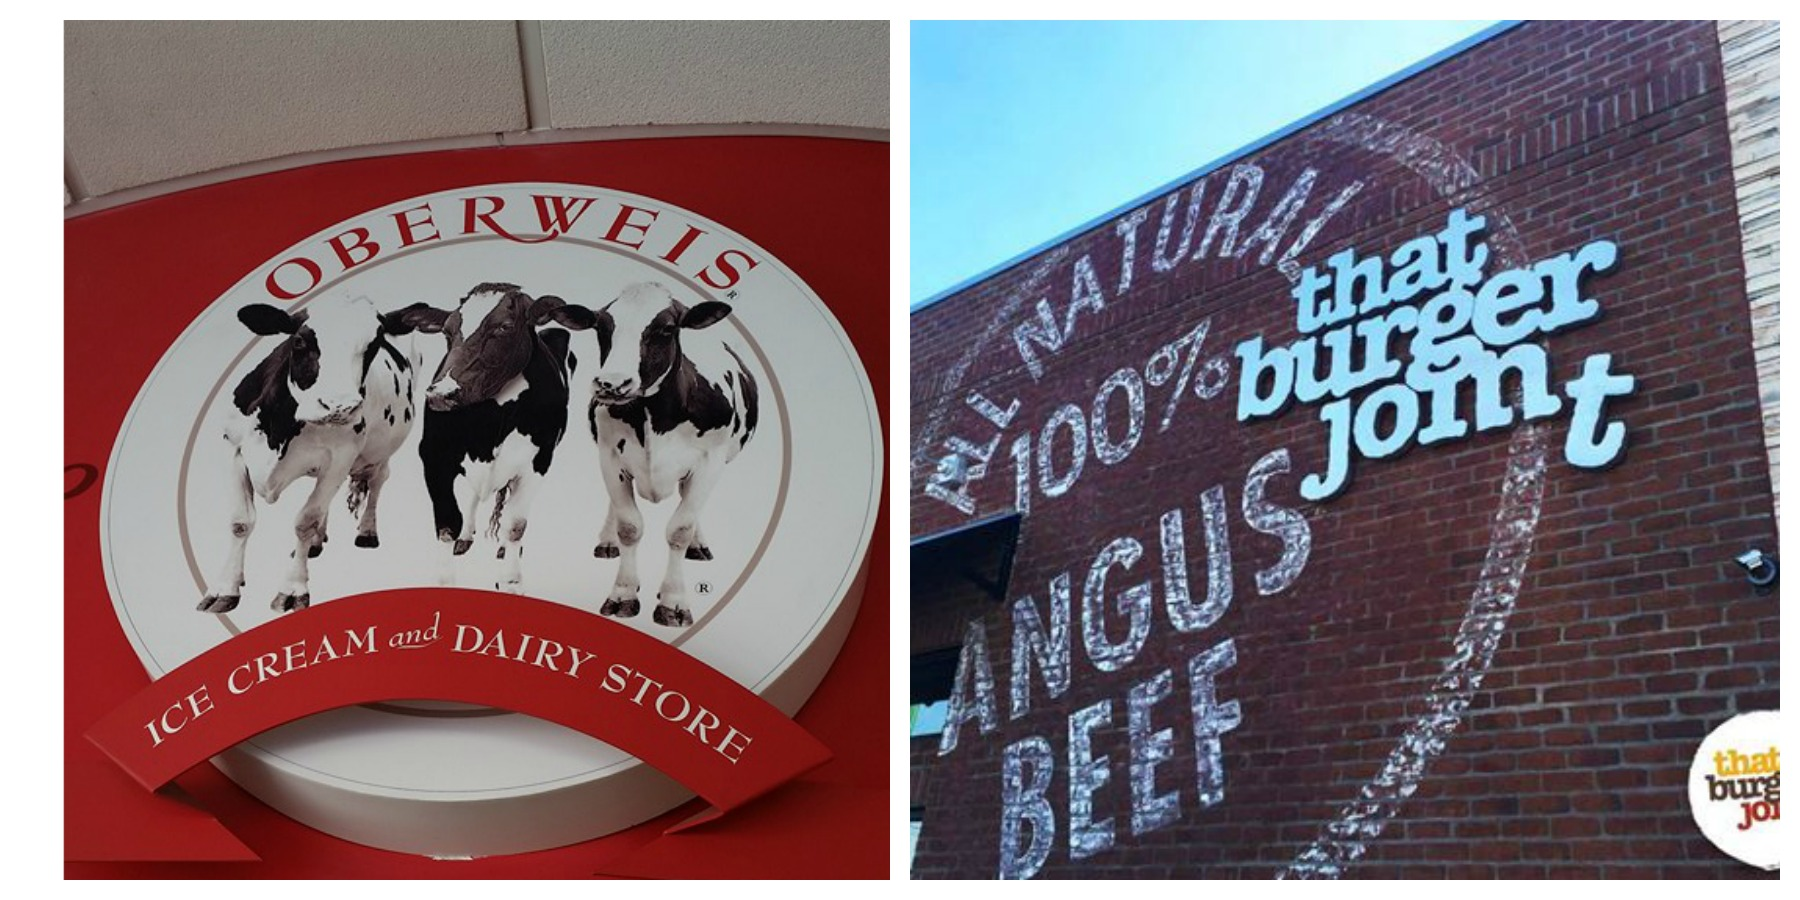 Oberweis is a dairy and milk delivery business that has been going strong for over years. Oberweis works with small-herd family farmers to produce the best .